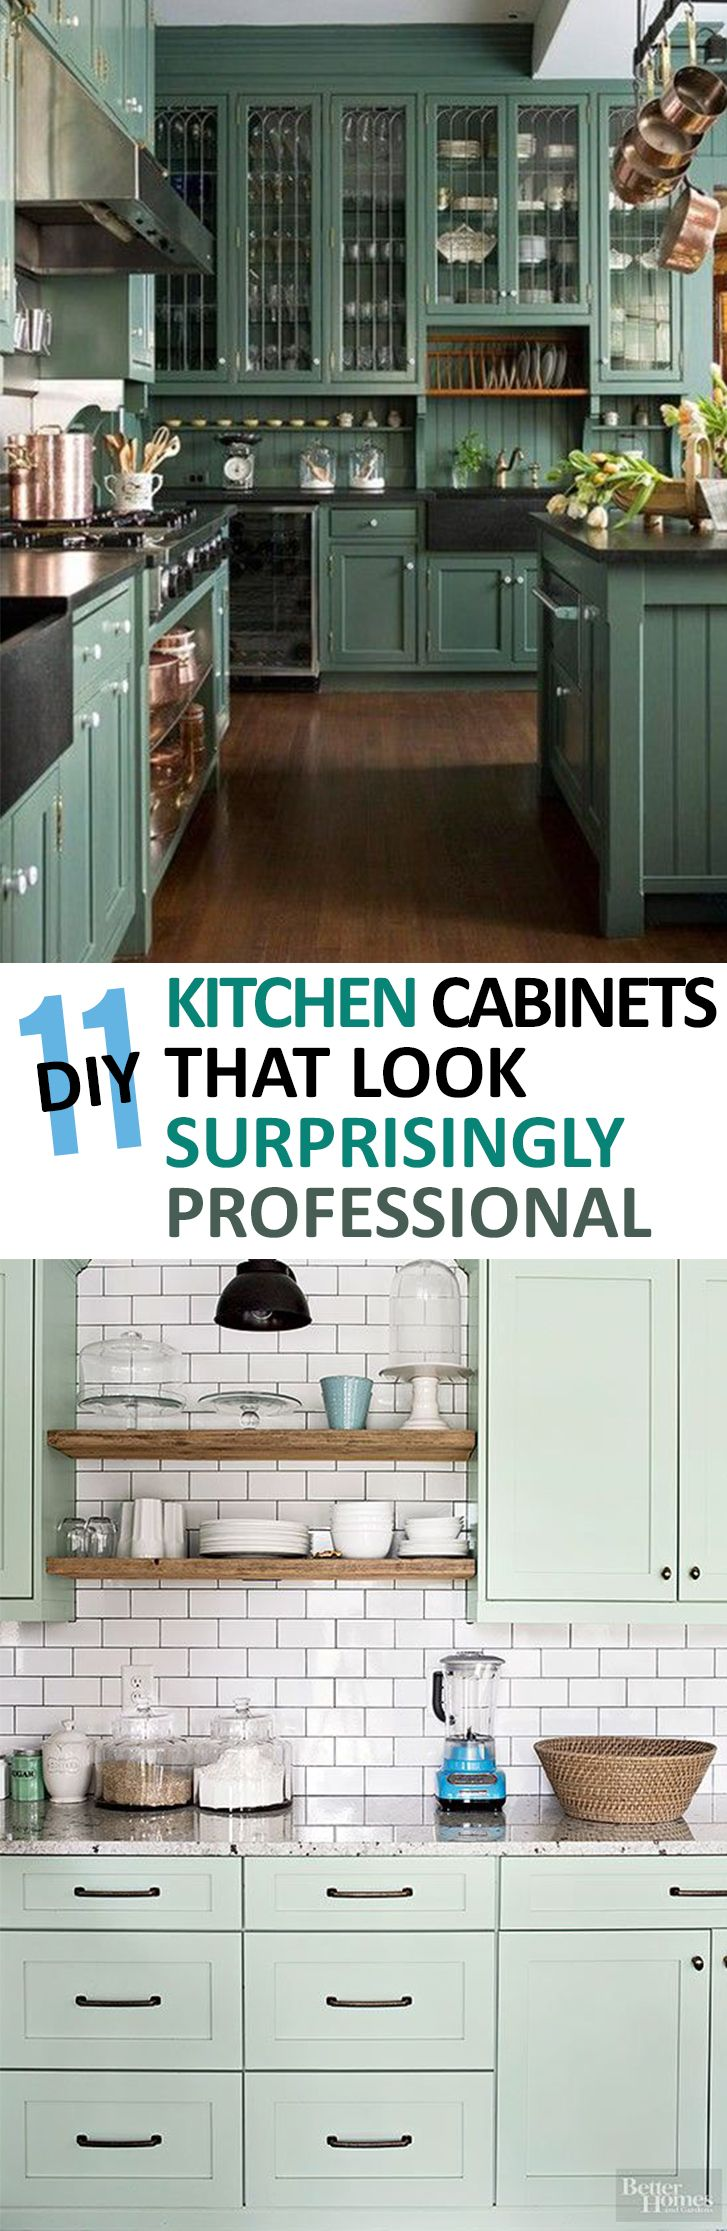 Best 25+ Kitchen cabinet redo ideas only on Pinterest | Diy ...